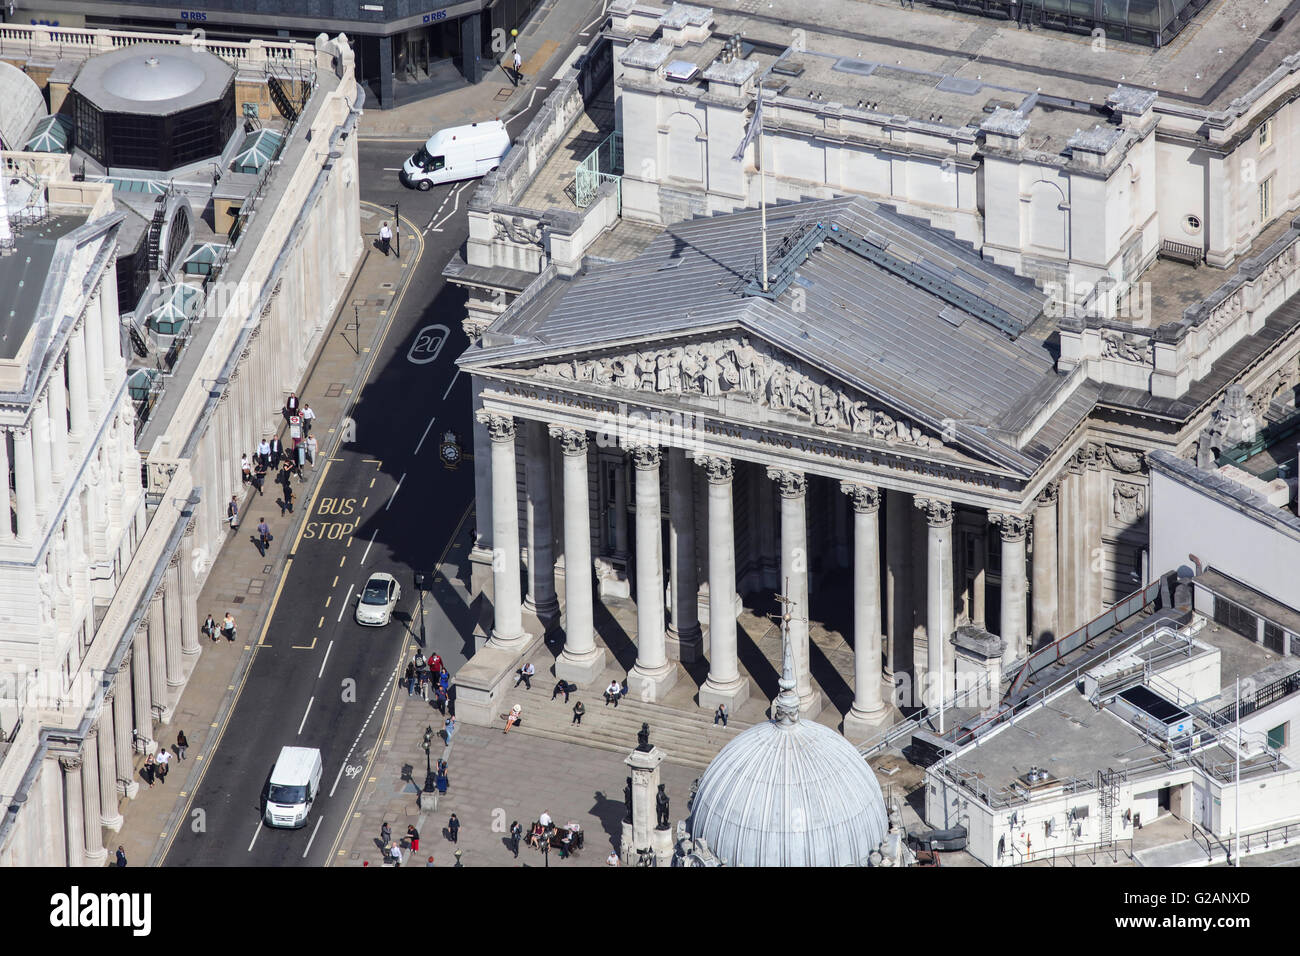 An aerial view of the Royal Exchange in London, formerly occupied by Lloyds but now a shopping venue - Stock Image